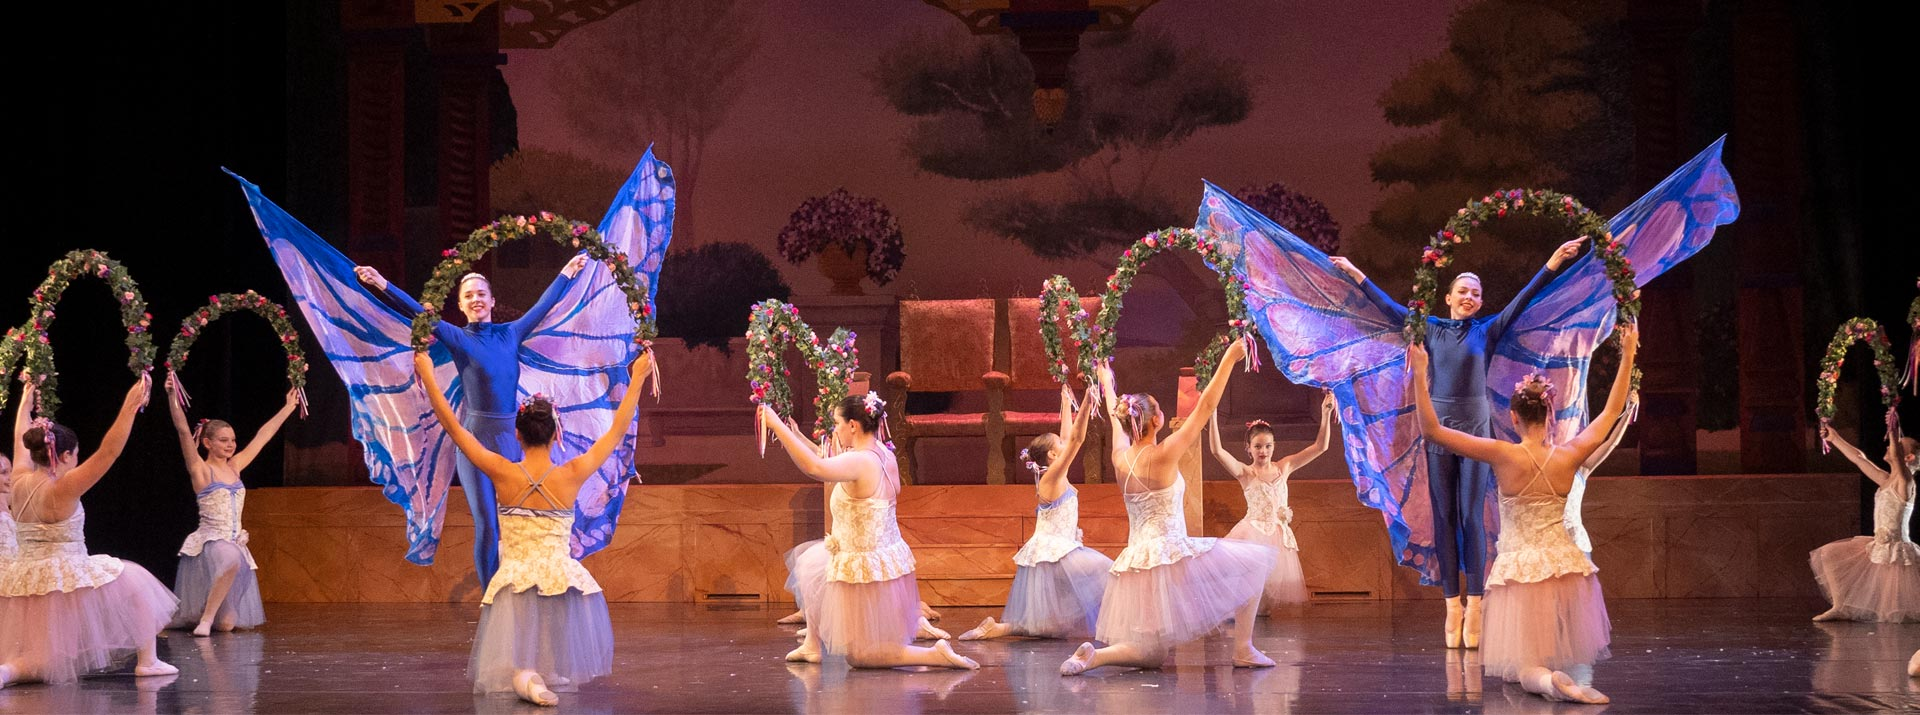 The Nutcracker stage - Details about The Nutcracker - GCB